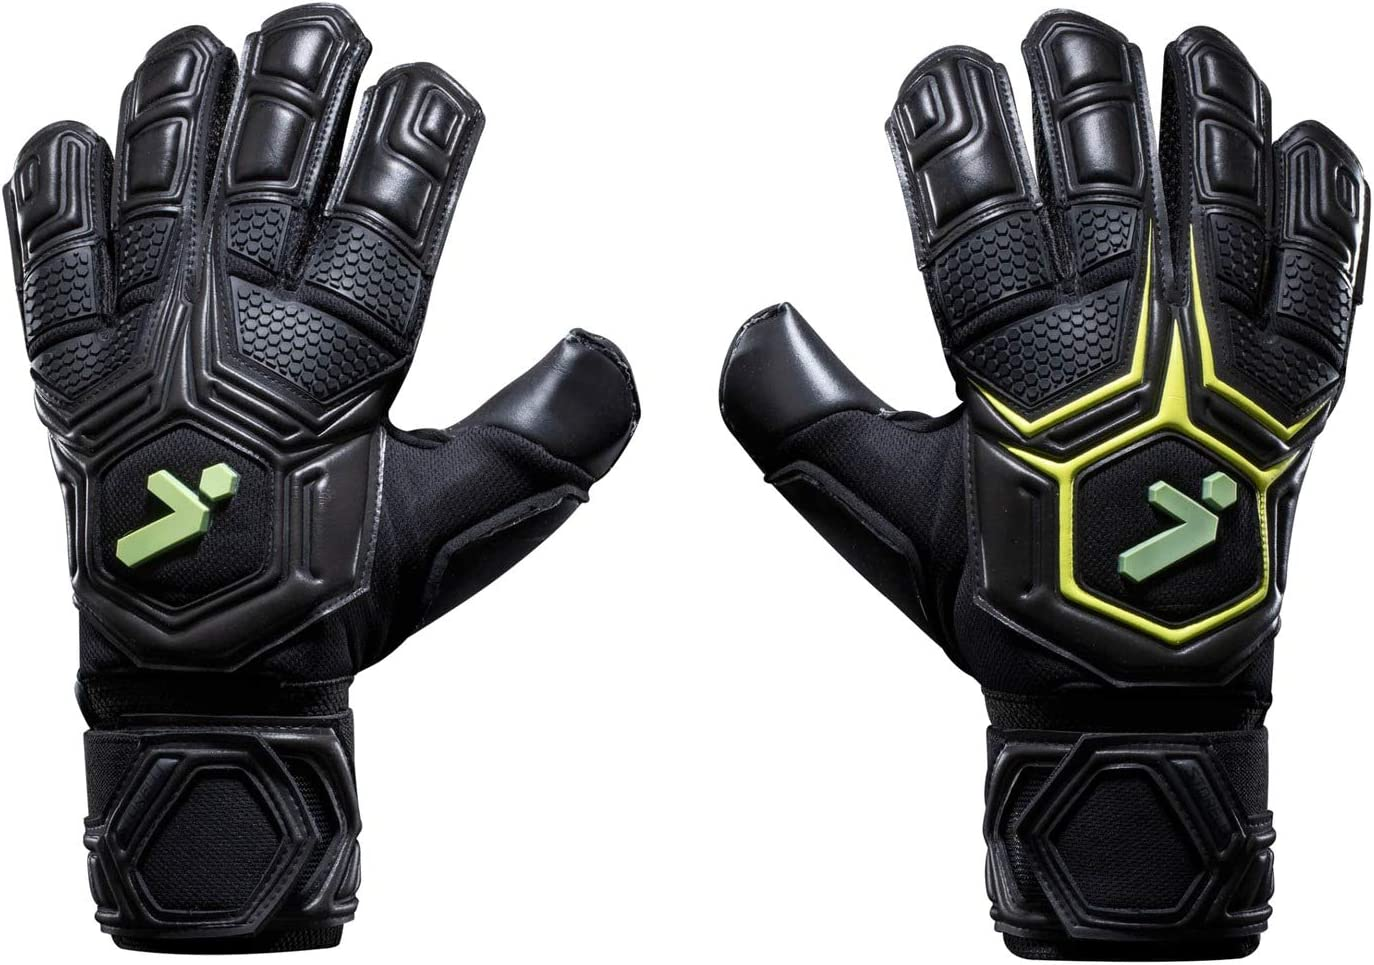 Professional Soccer Goalie Gloves with Finger Spines Black /& Yellow Storelli Gladiator Pro 3.0 Goalkeeper Gloves Superior Finger and Hand Protection